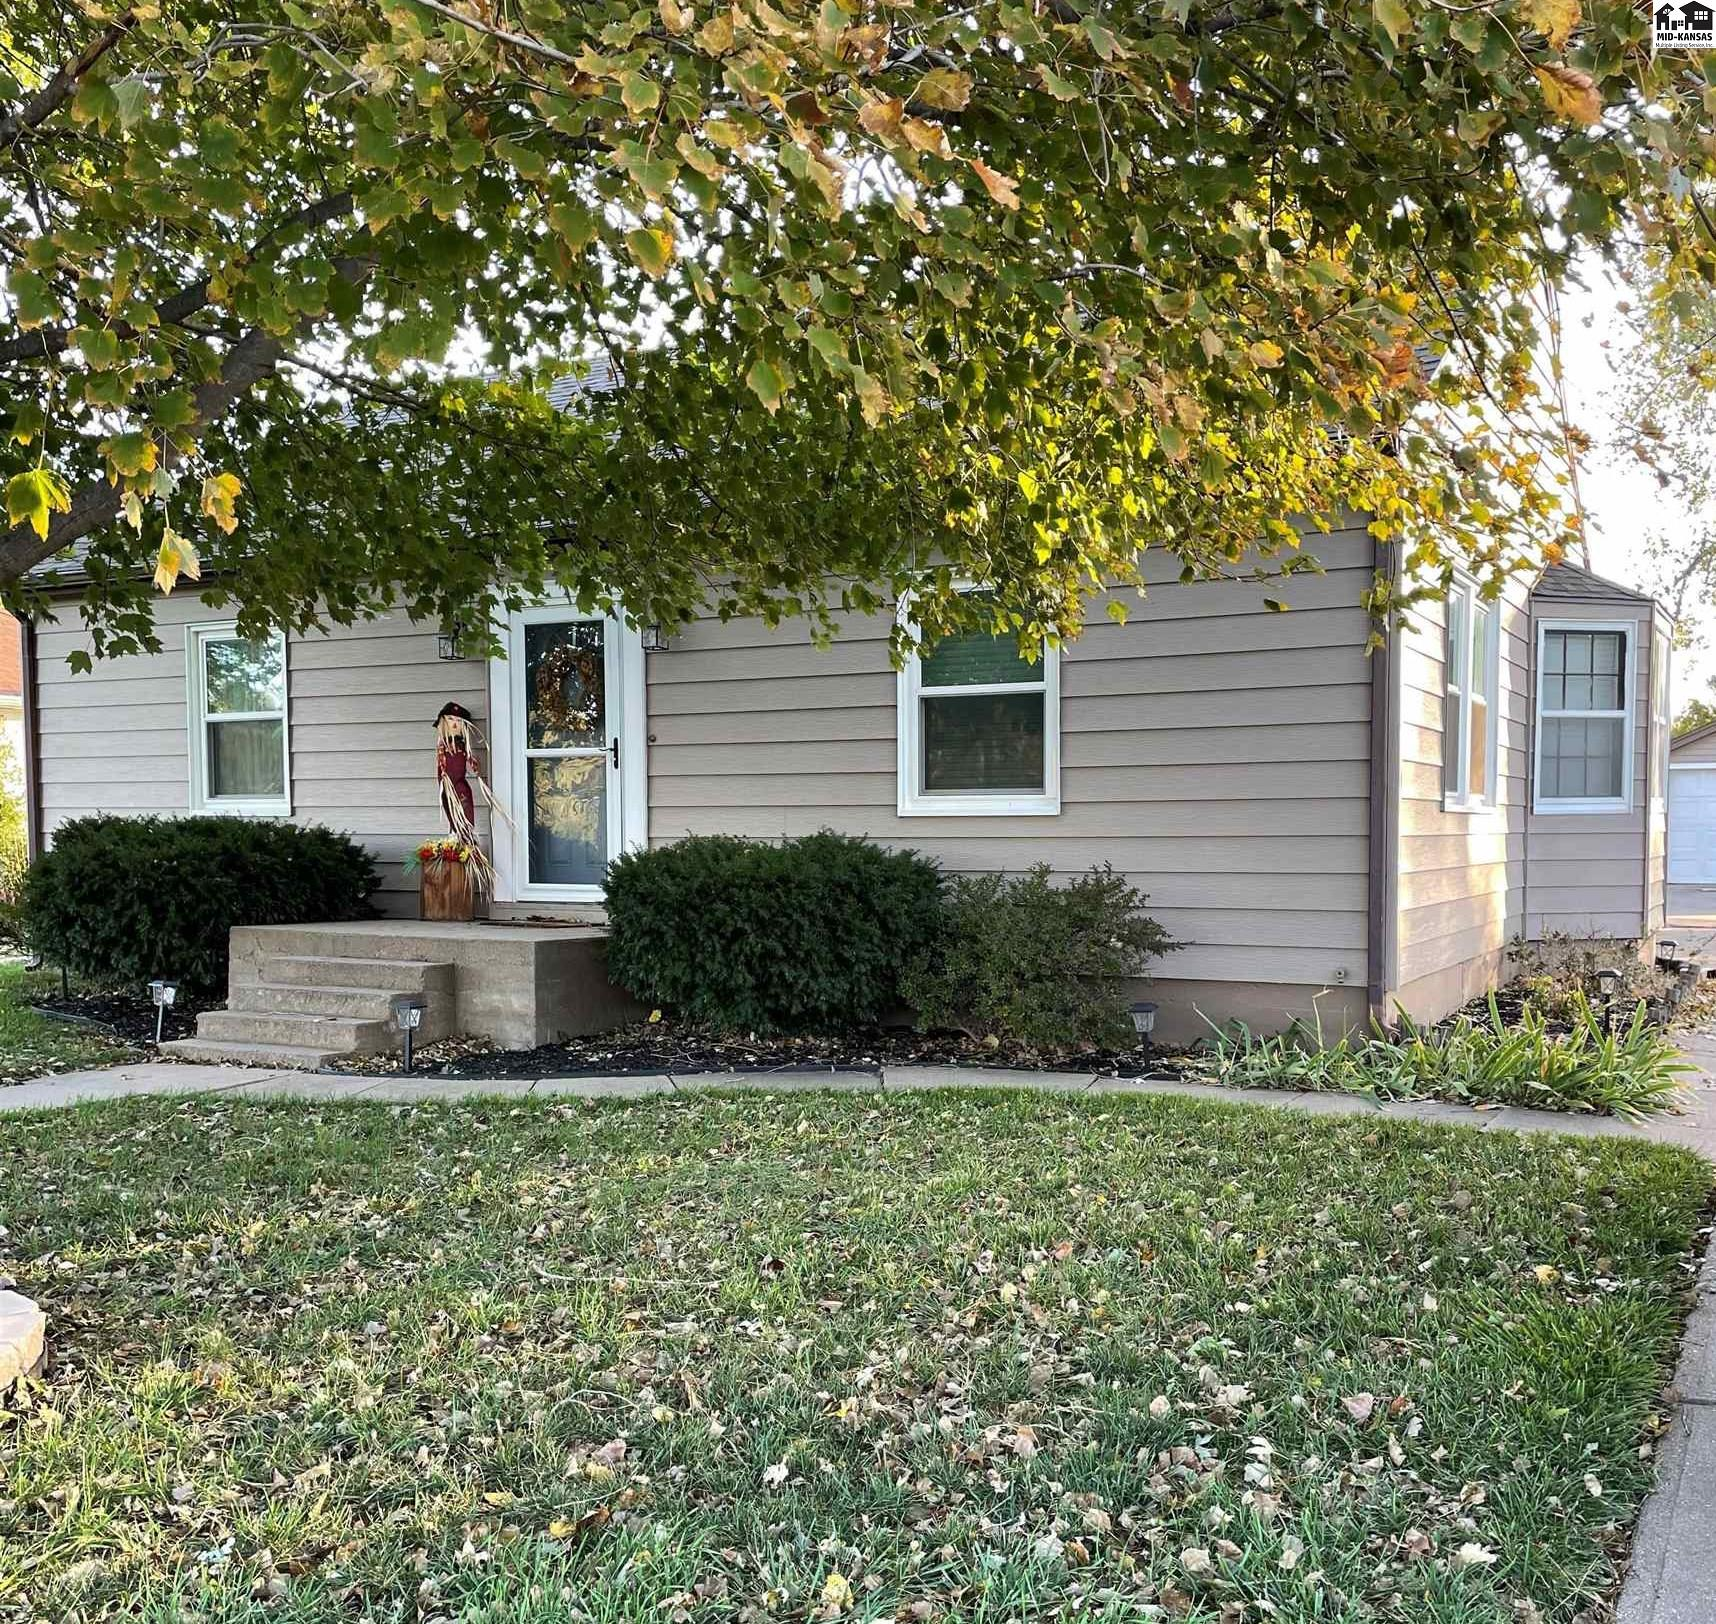 Come check out this beautifully finished 3 bedroom, 2 bath house. Updated color pallet, with white trim, white wood blinds, and new windows in living room and front bedroom. Basement was gutted and finished with a bonus room and family room. Large kitchen has french doors that lead out to a covered patio and fenced in backyard. Large detached 2 stall garage with a shop area at front of garage.